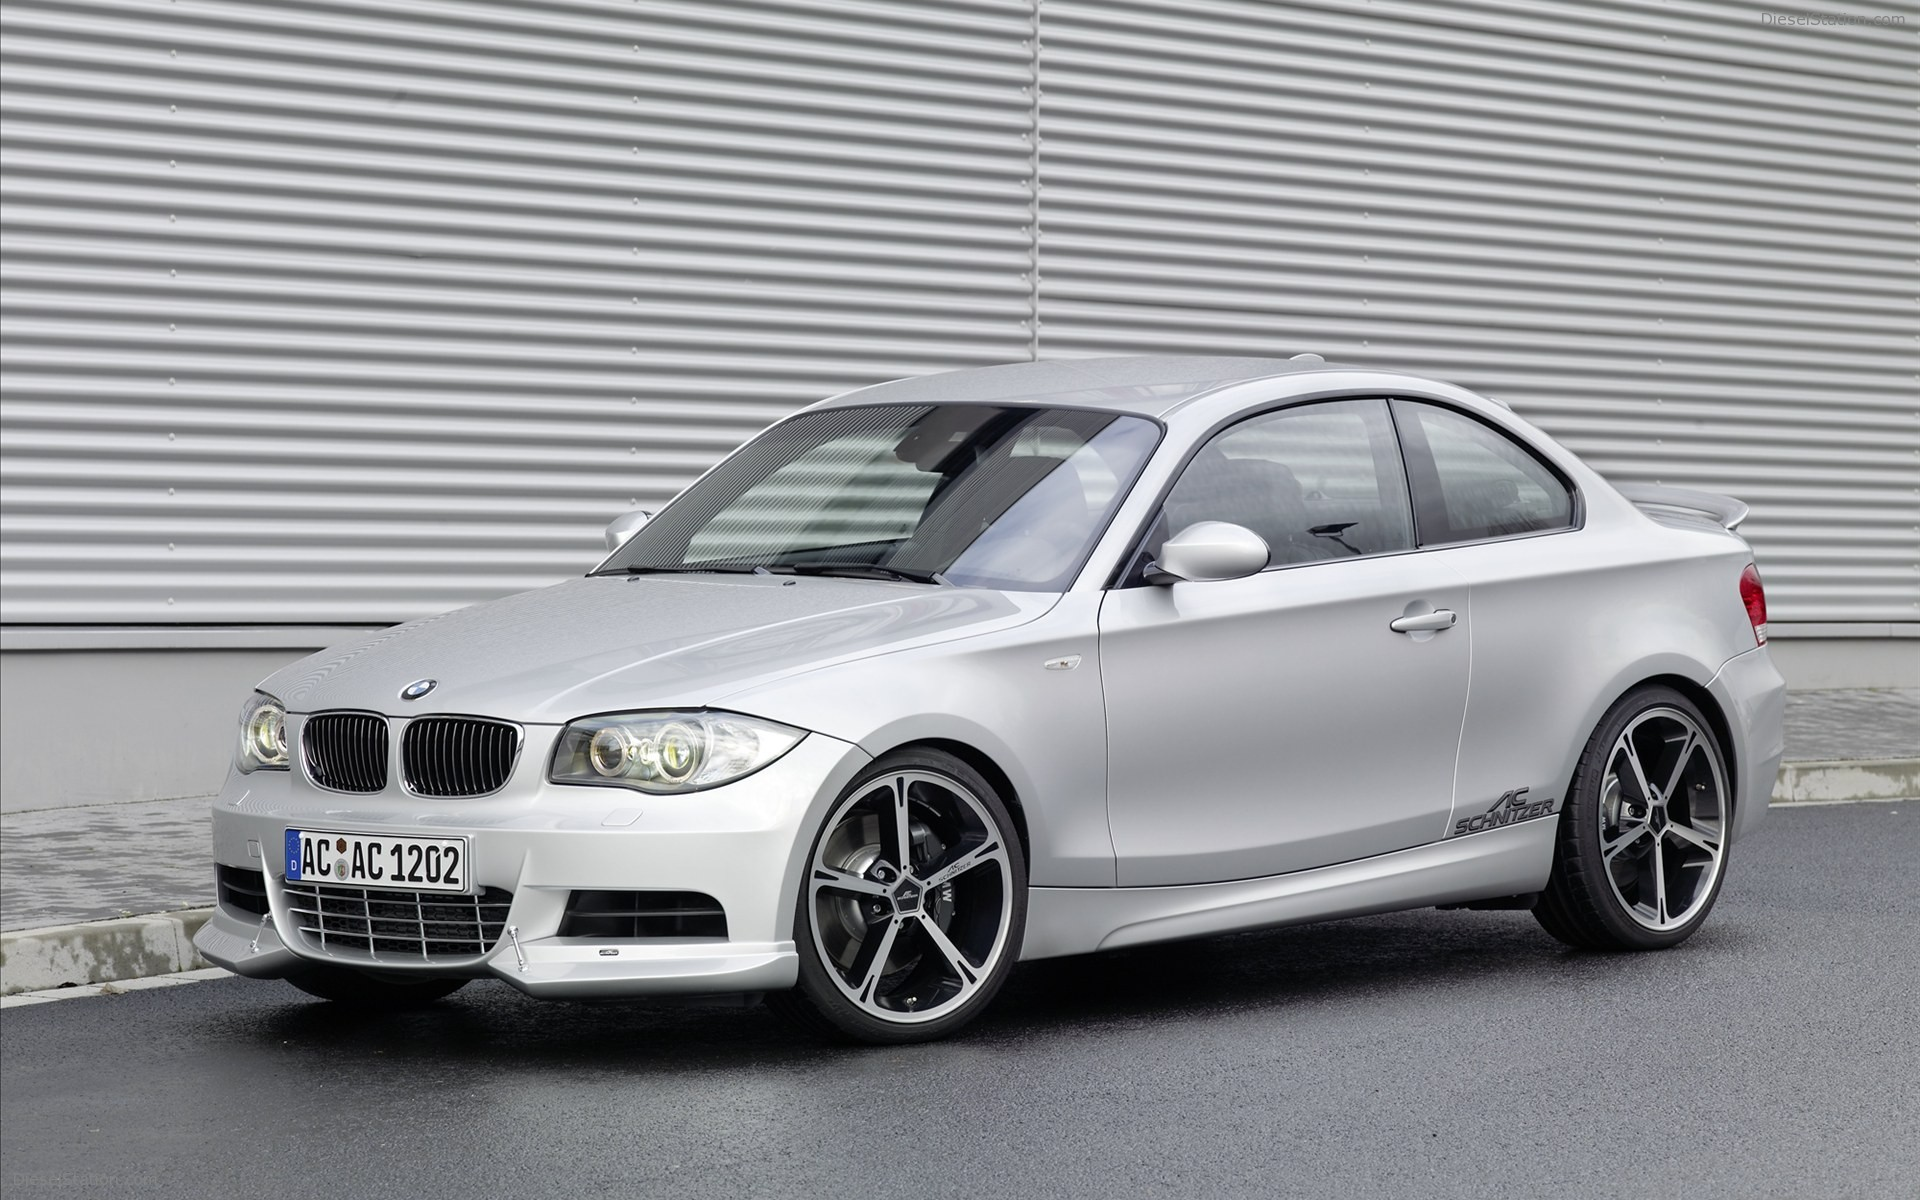 2011 Bmw 1er m coupe (e82) – pictures, information and specs - Auto ...